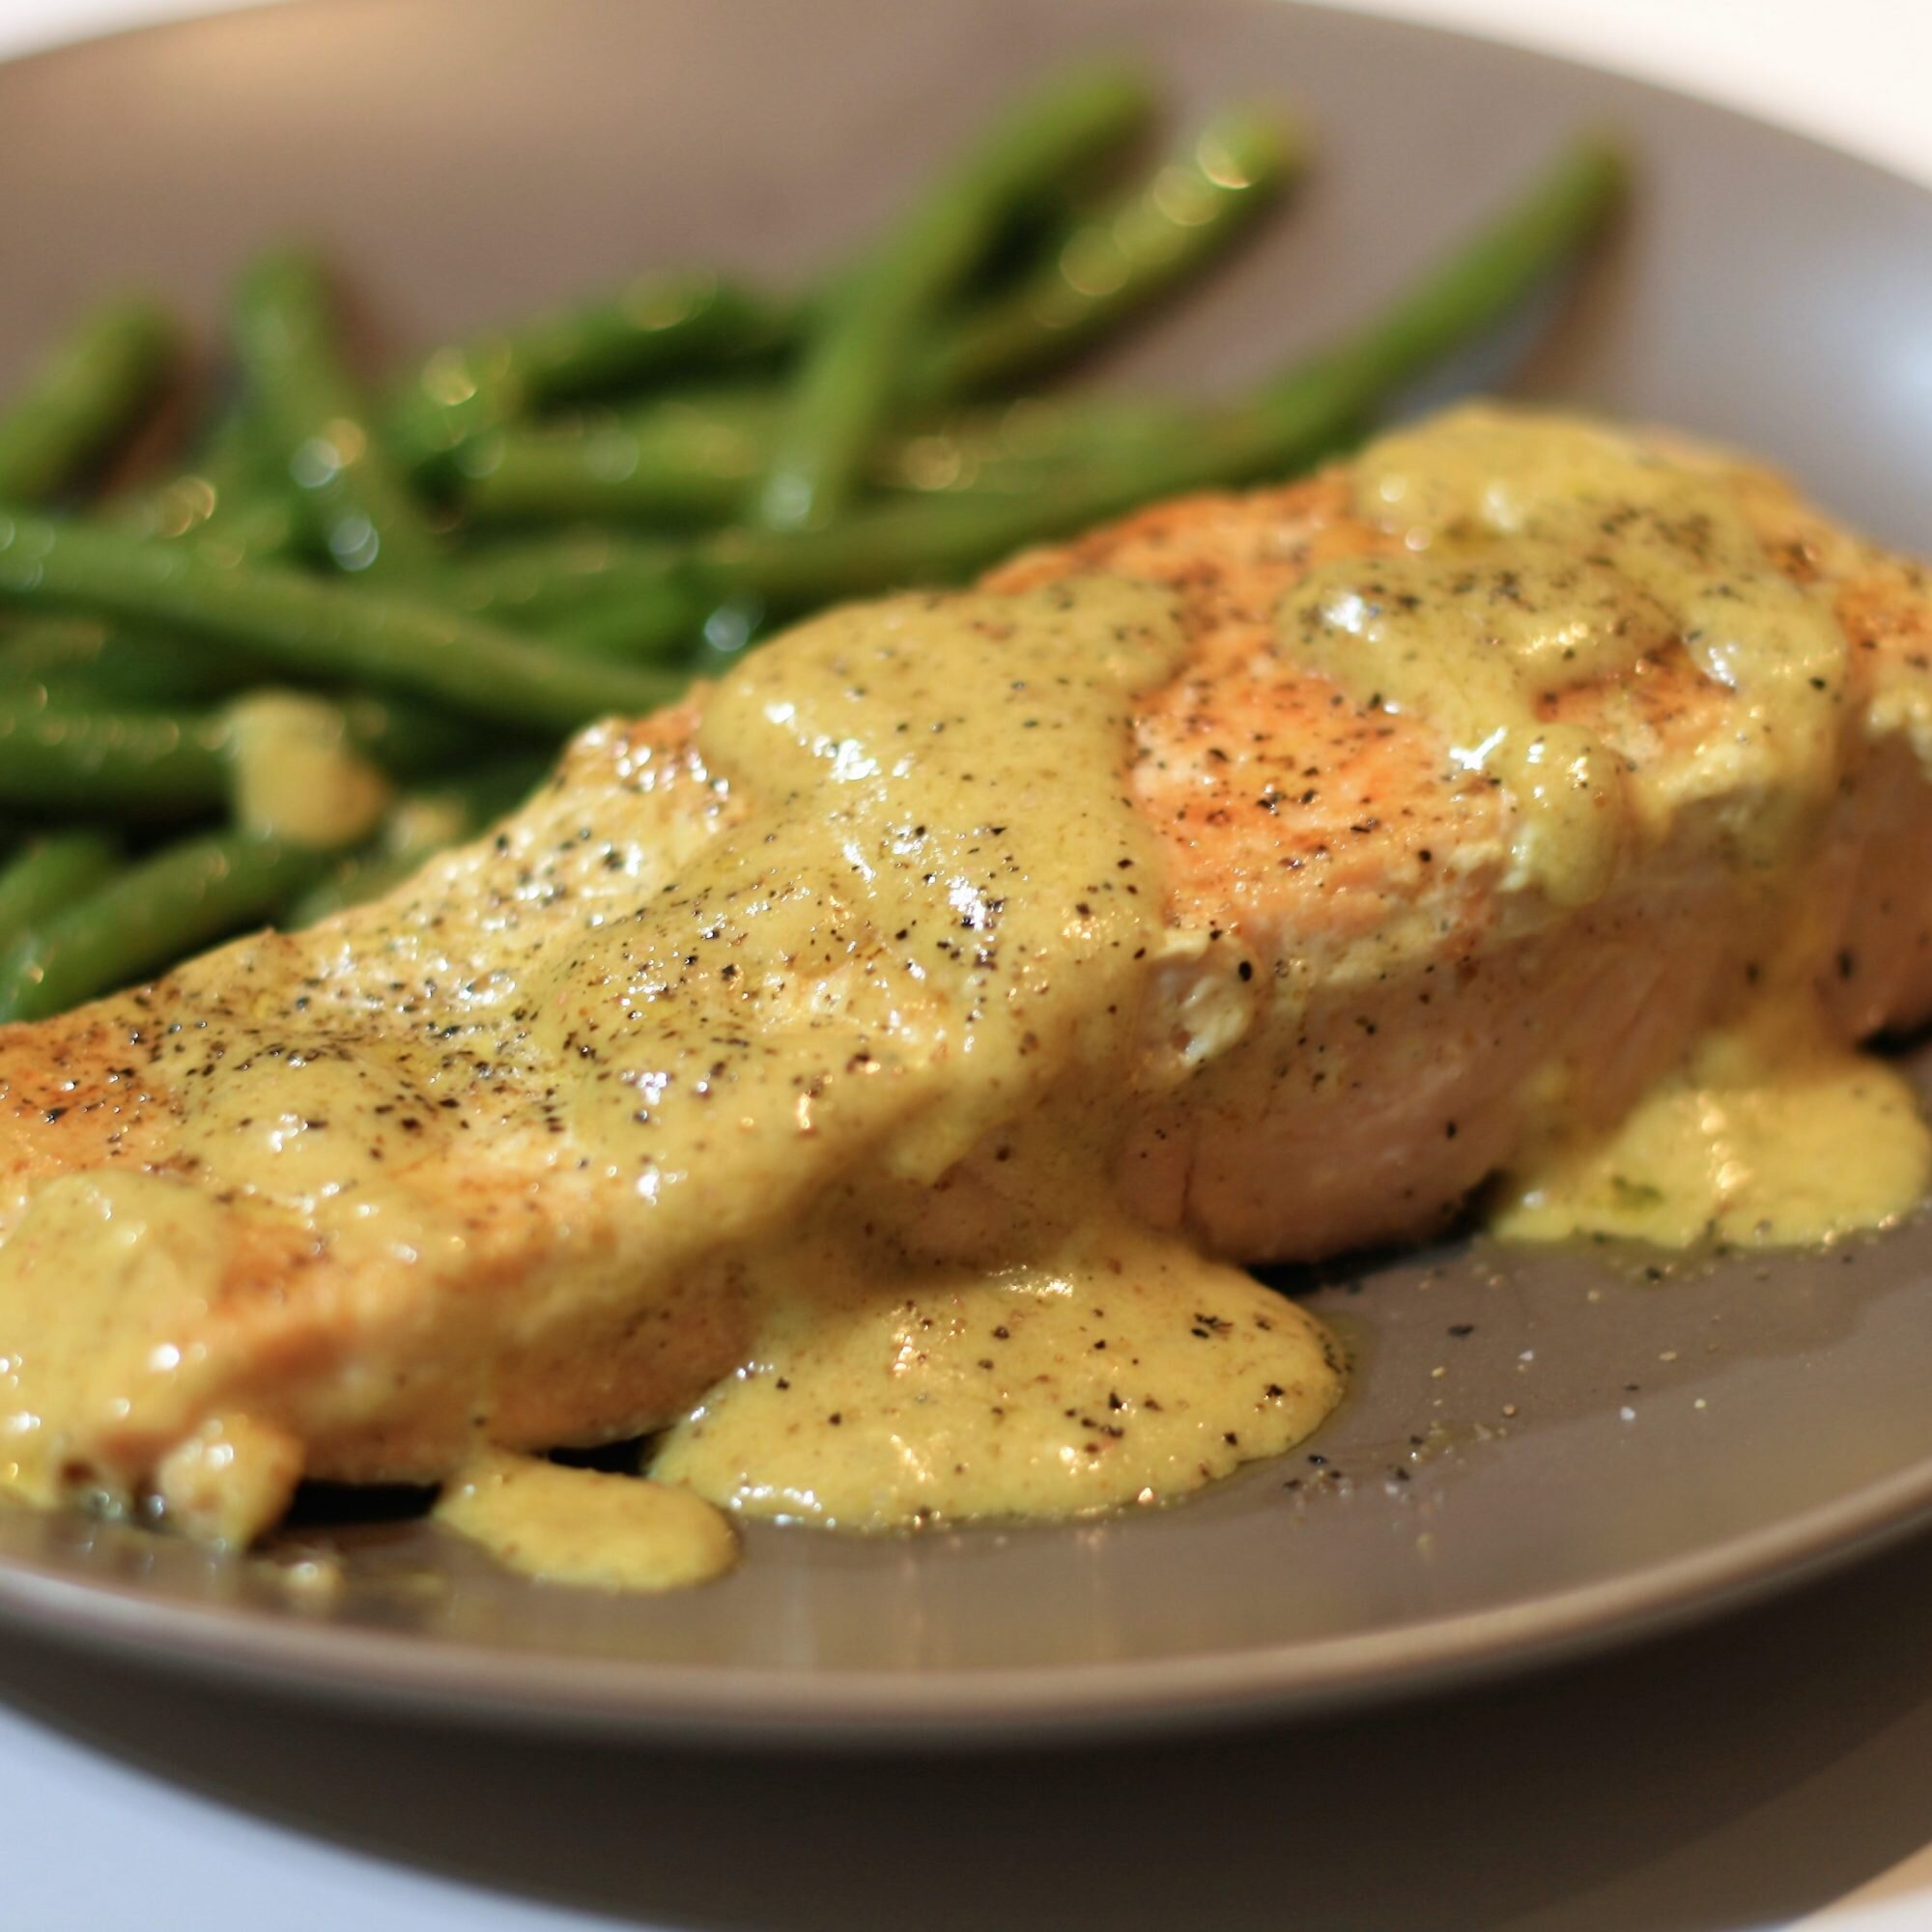 20 top rated salmon recipes ready in 30 minutes or less